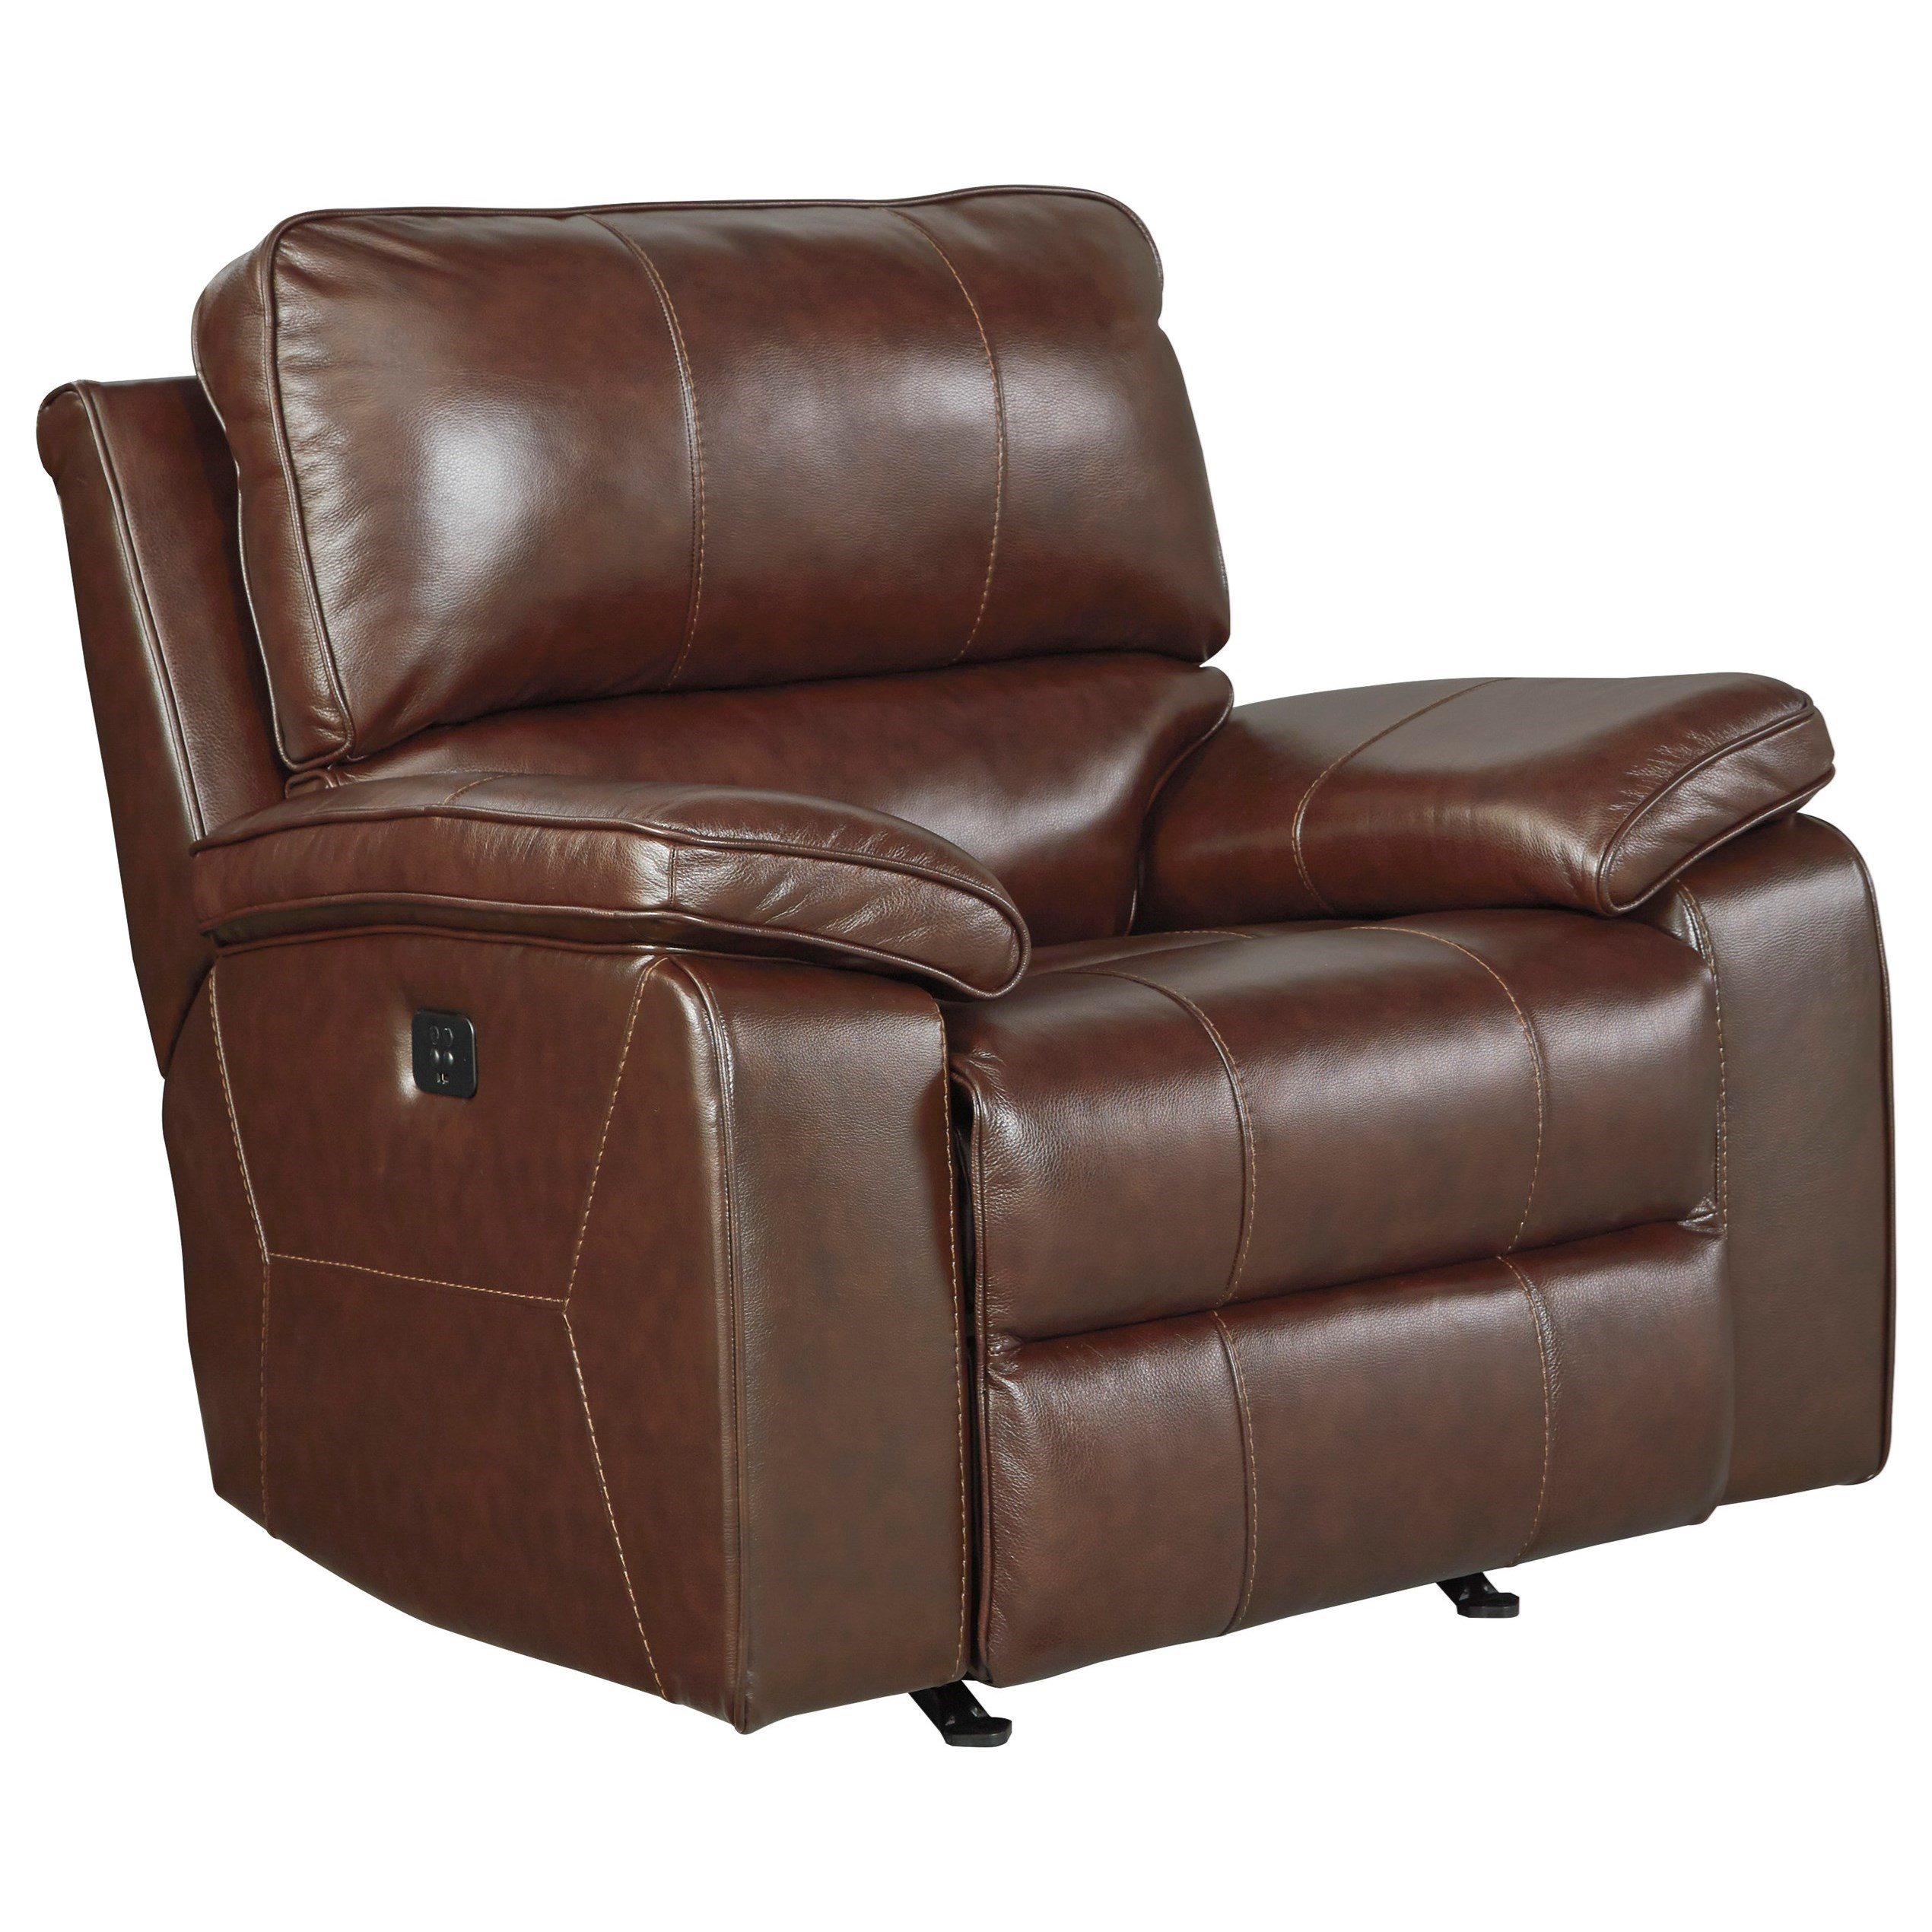 Signature Design by Ashley Transister Power Rocker Recliner w/ Adjustable Headrest - Item Number: 5130213